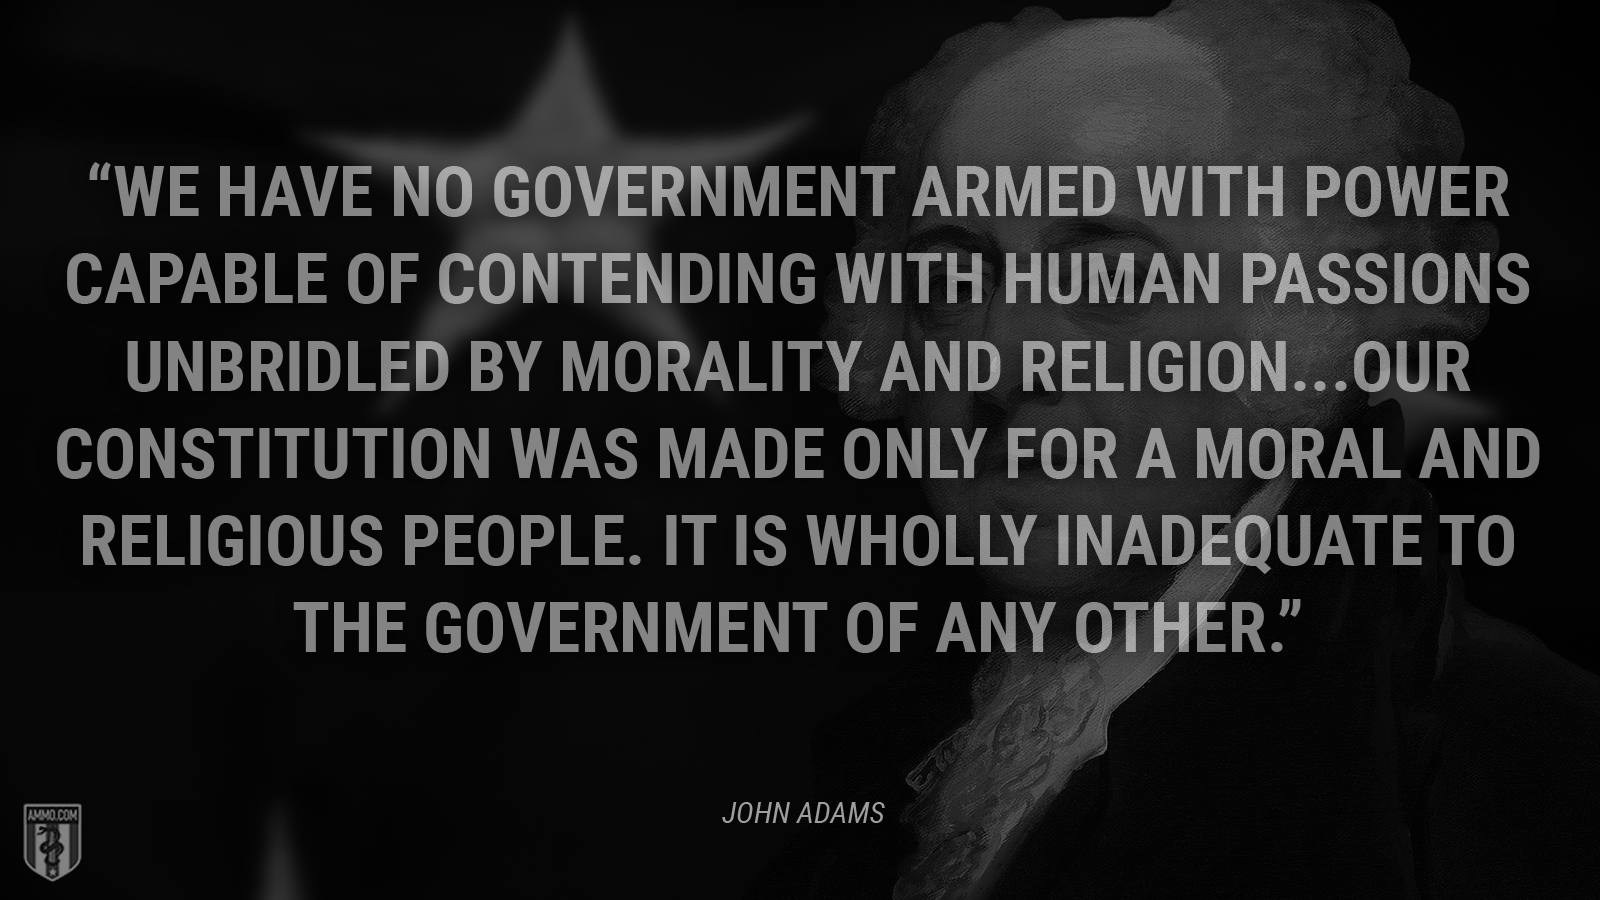 """We have no government armed with power capable of contending with human passions unbridled by morality and religion...Our Constitution was made only for a moral and religious people. It is wholly inadequate to the government of any other."" - John Adams"